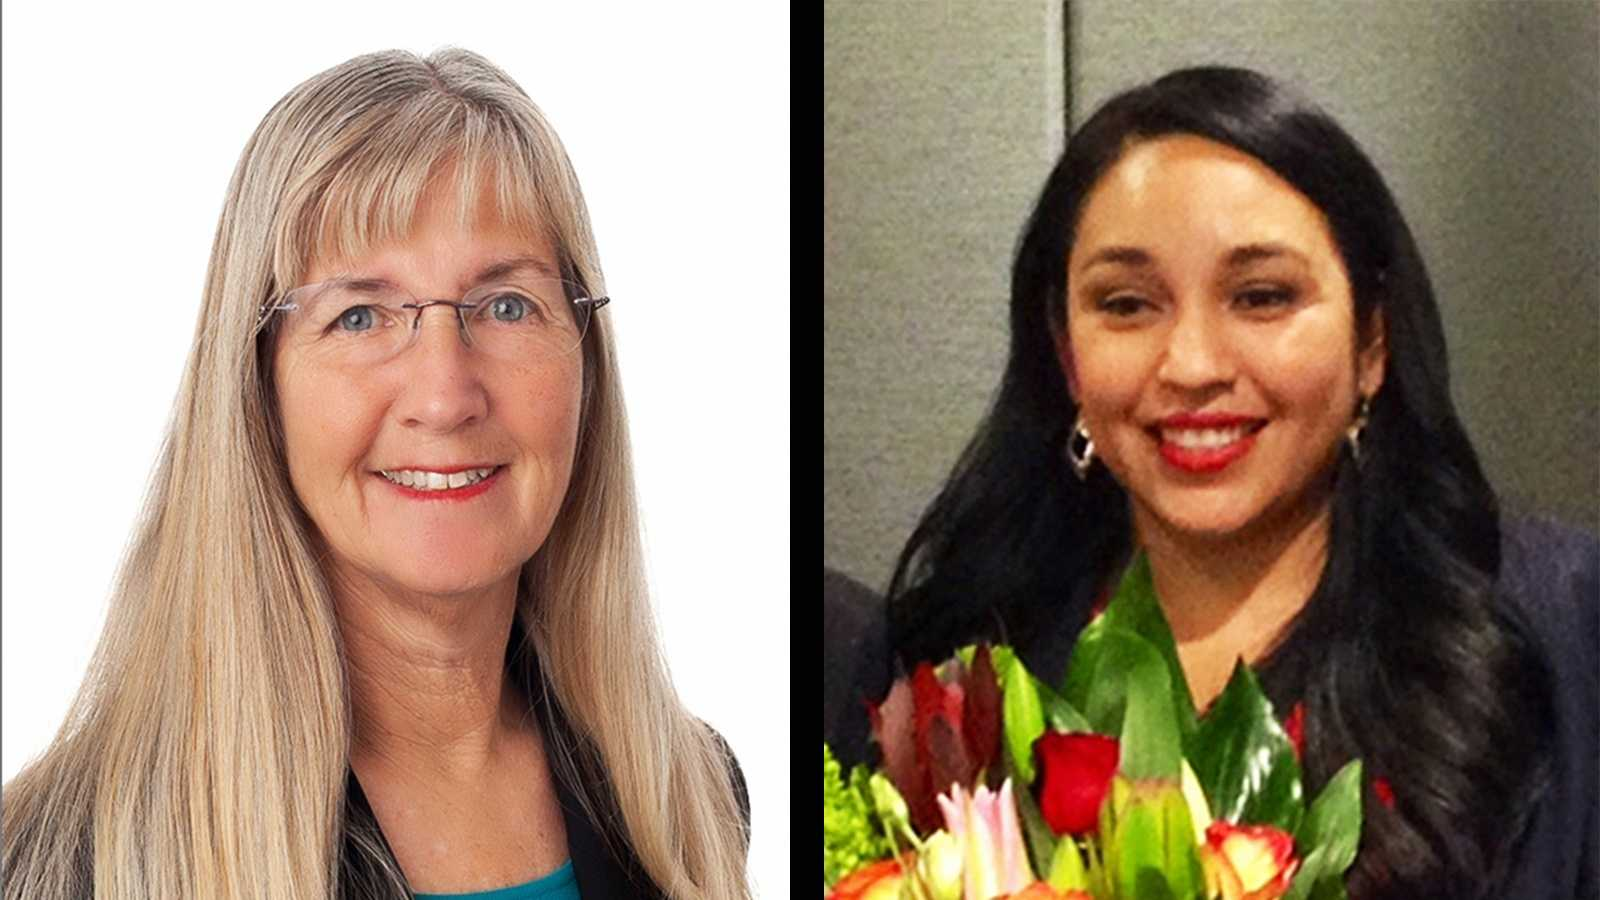 Lynn Robinson, left, will be Santa Cruz's next mayor, and Karina Cervantez, right, will be mayor of Watsonville.